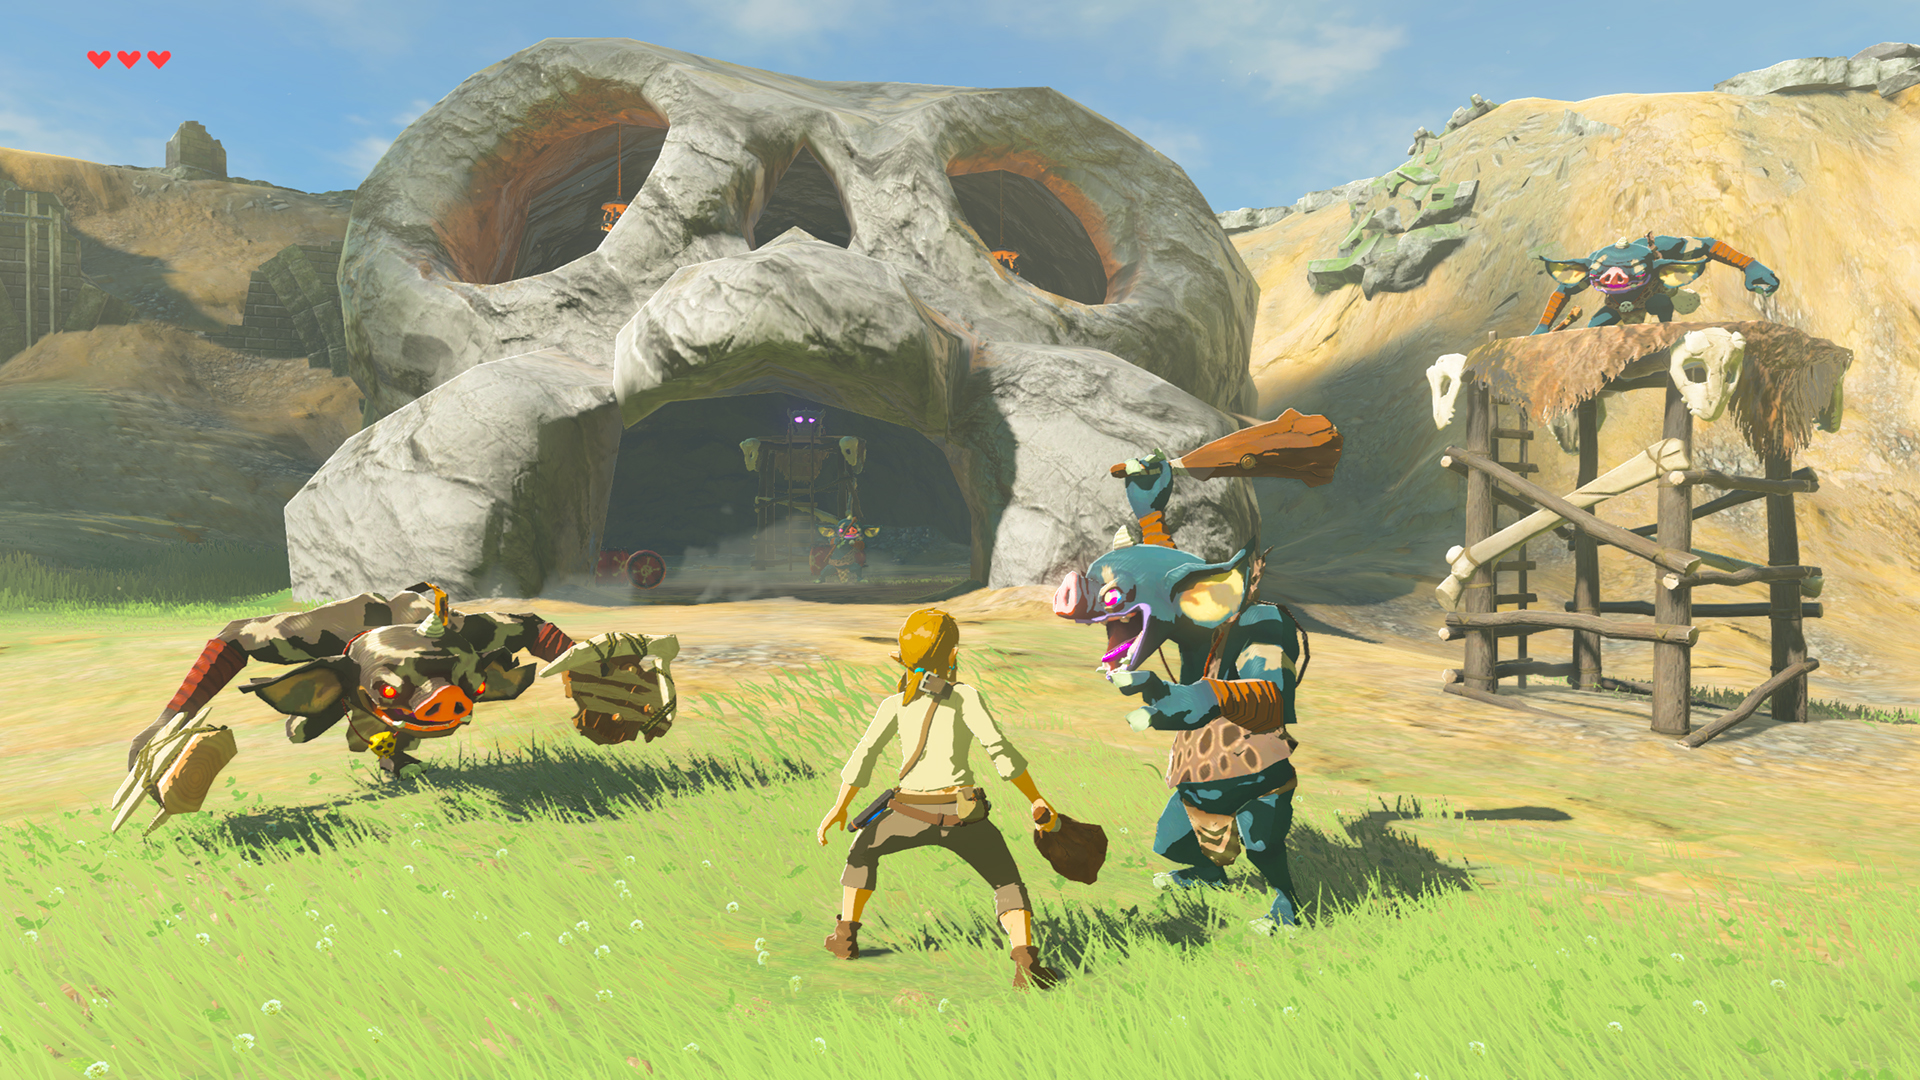 Link in a battle with blue Bokoblins in The Legend of Zelda: Breath of the Wild